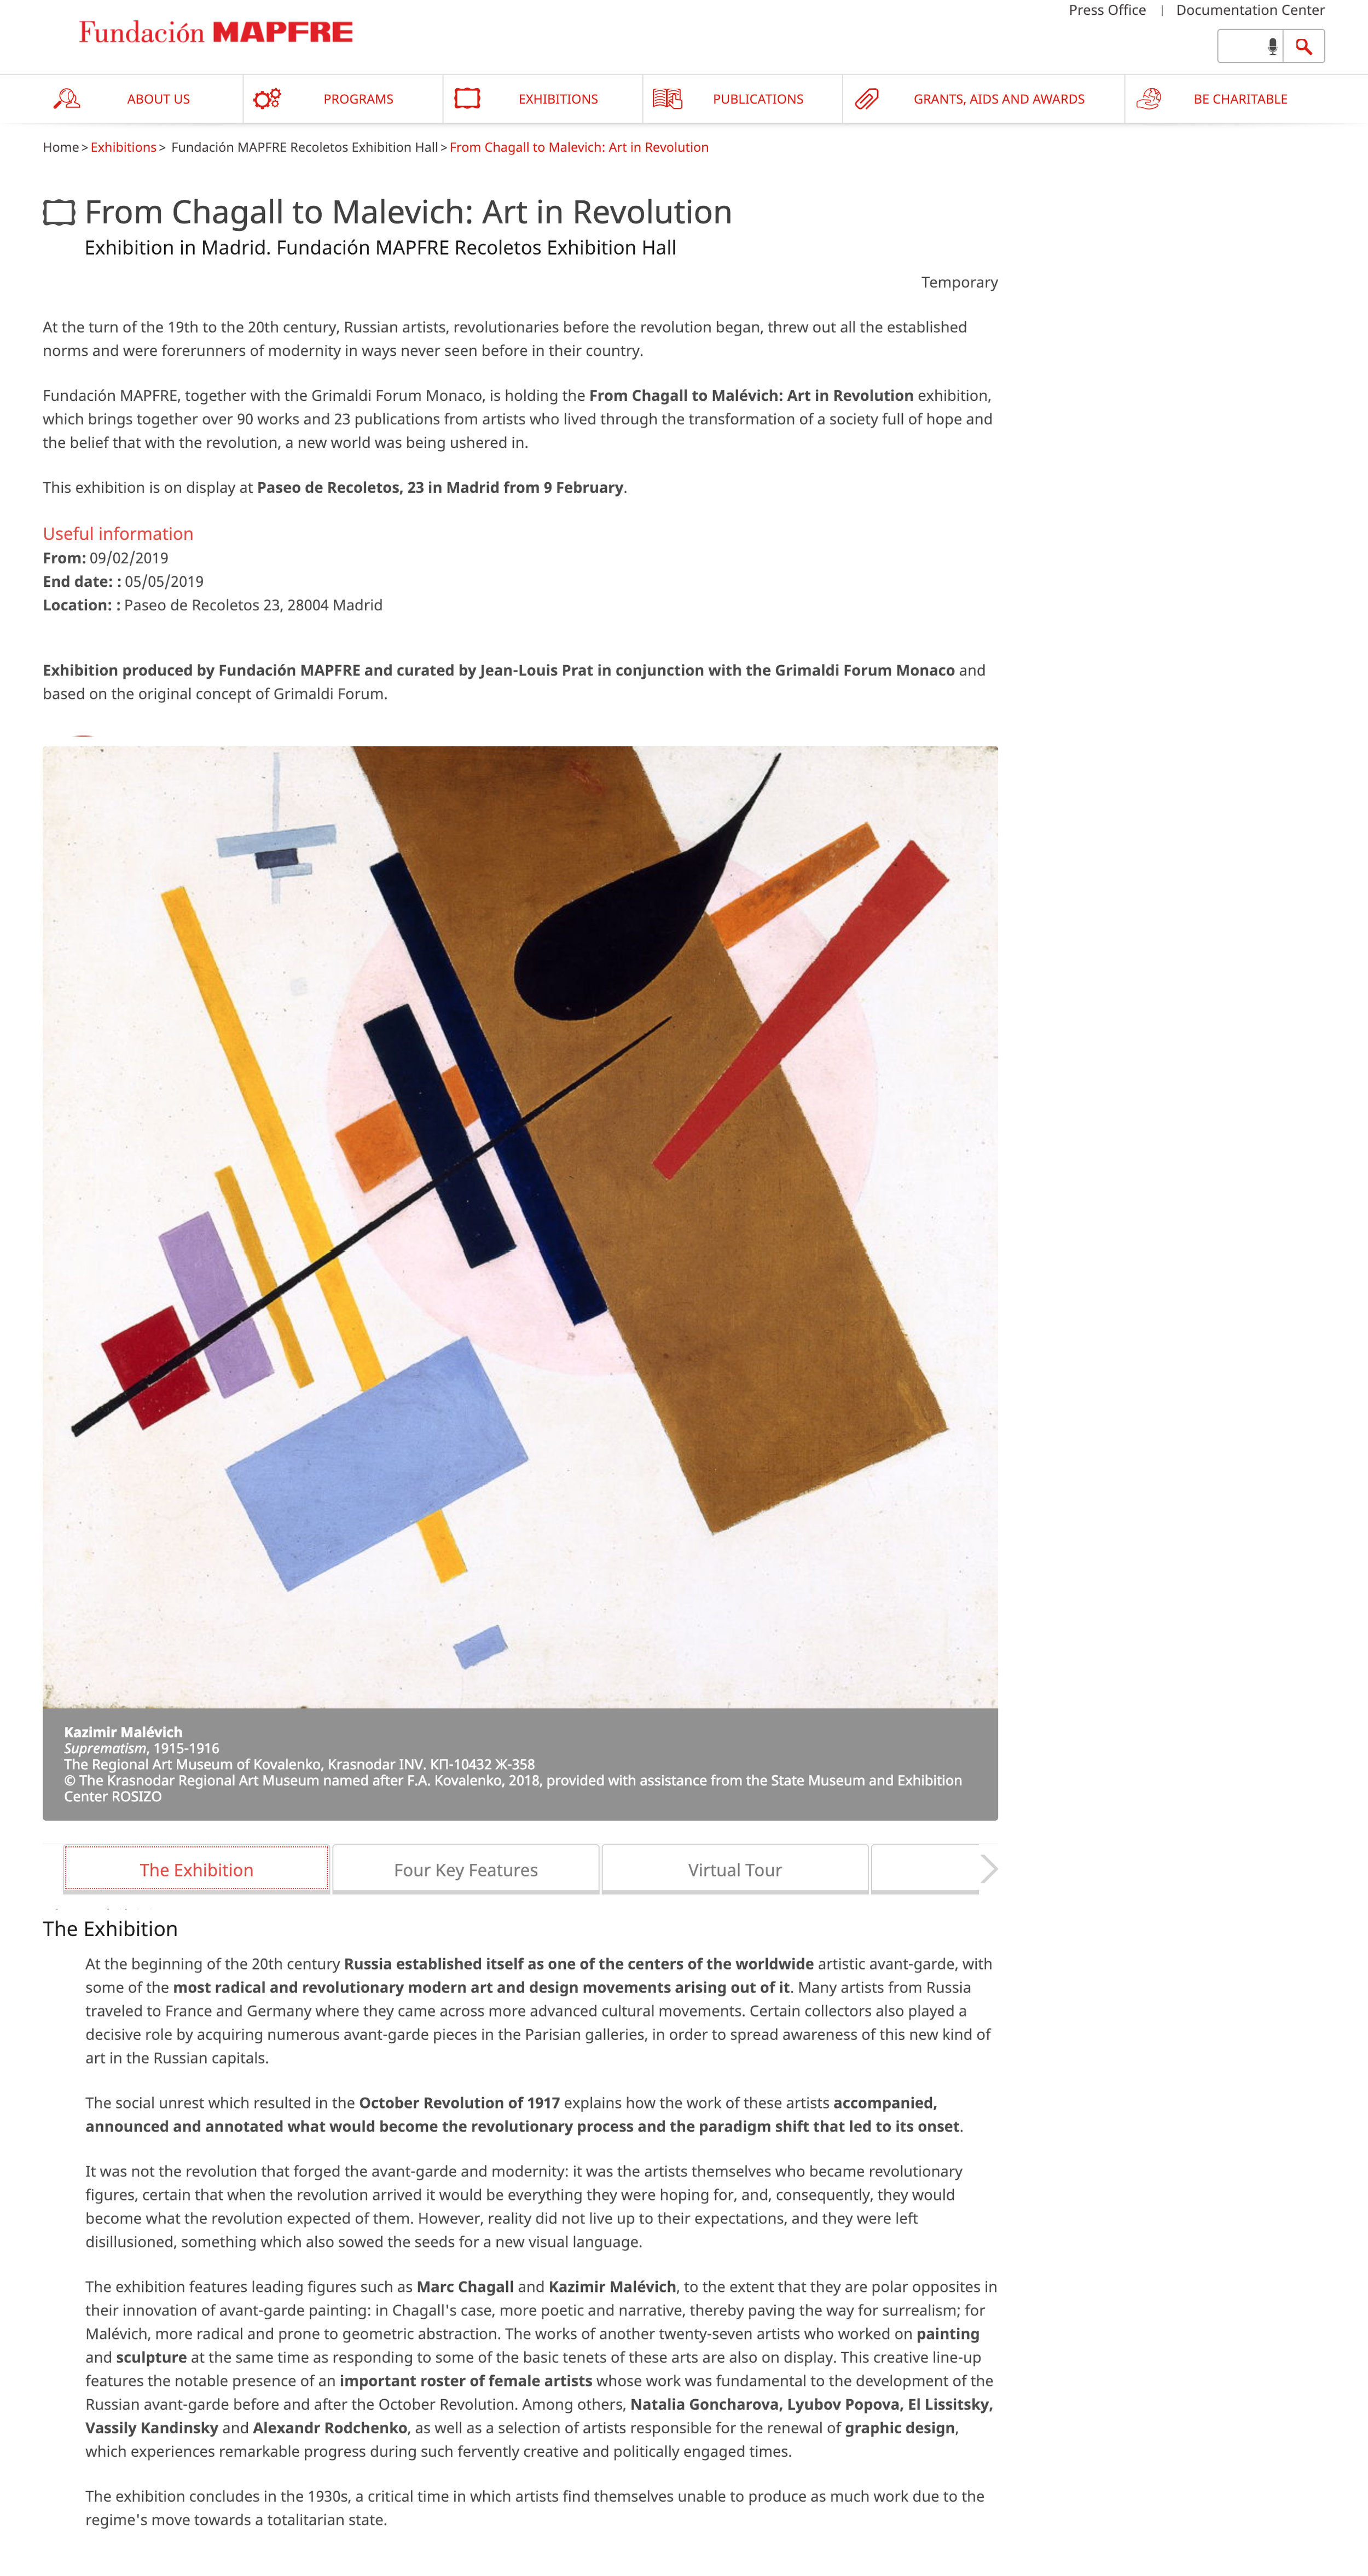 from_chagall_to_malevich_art_in_revolution